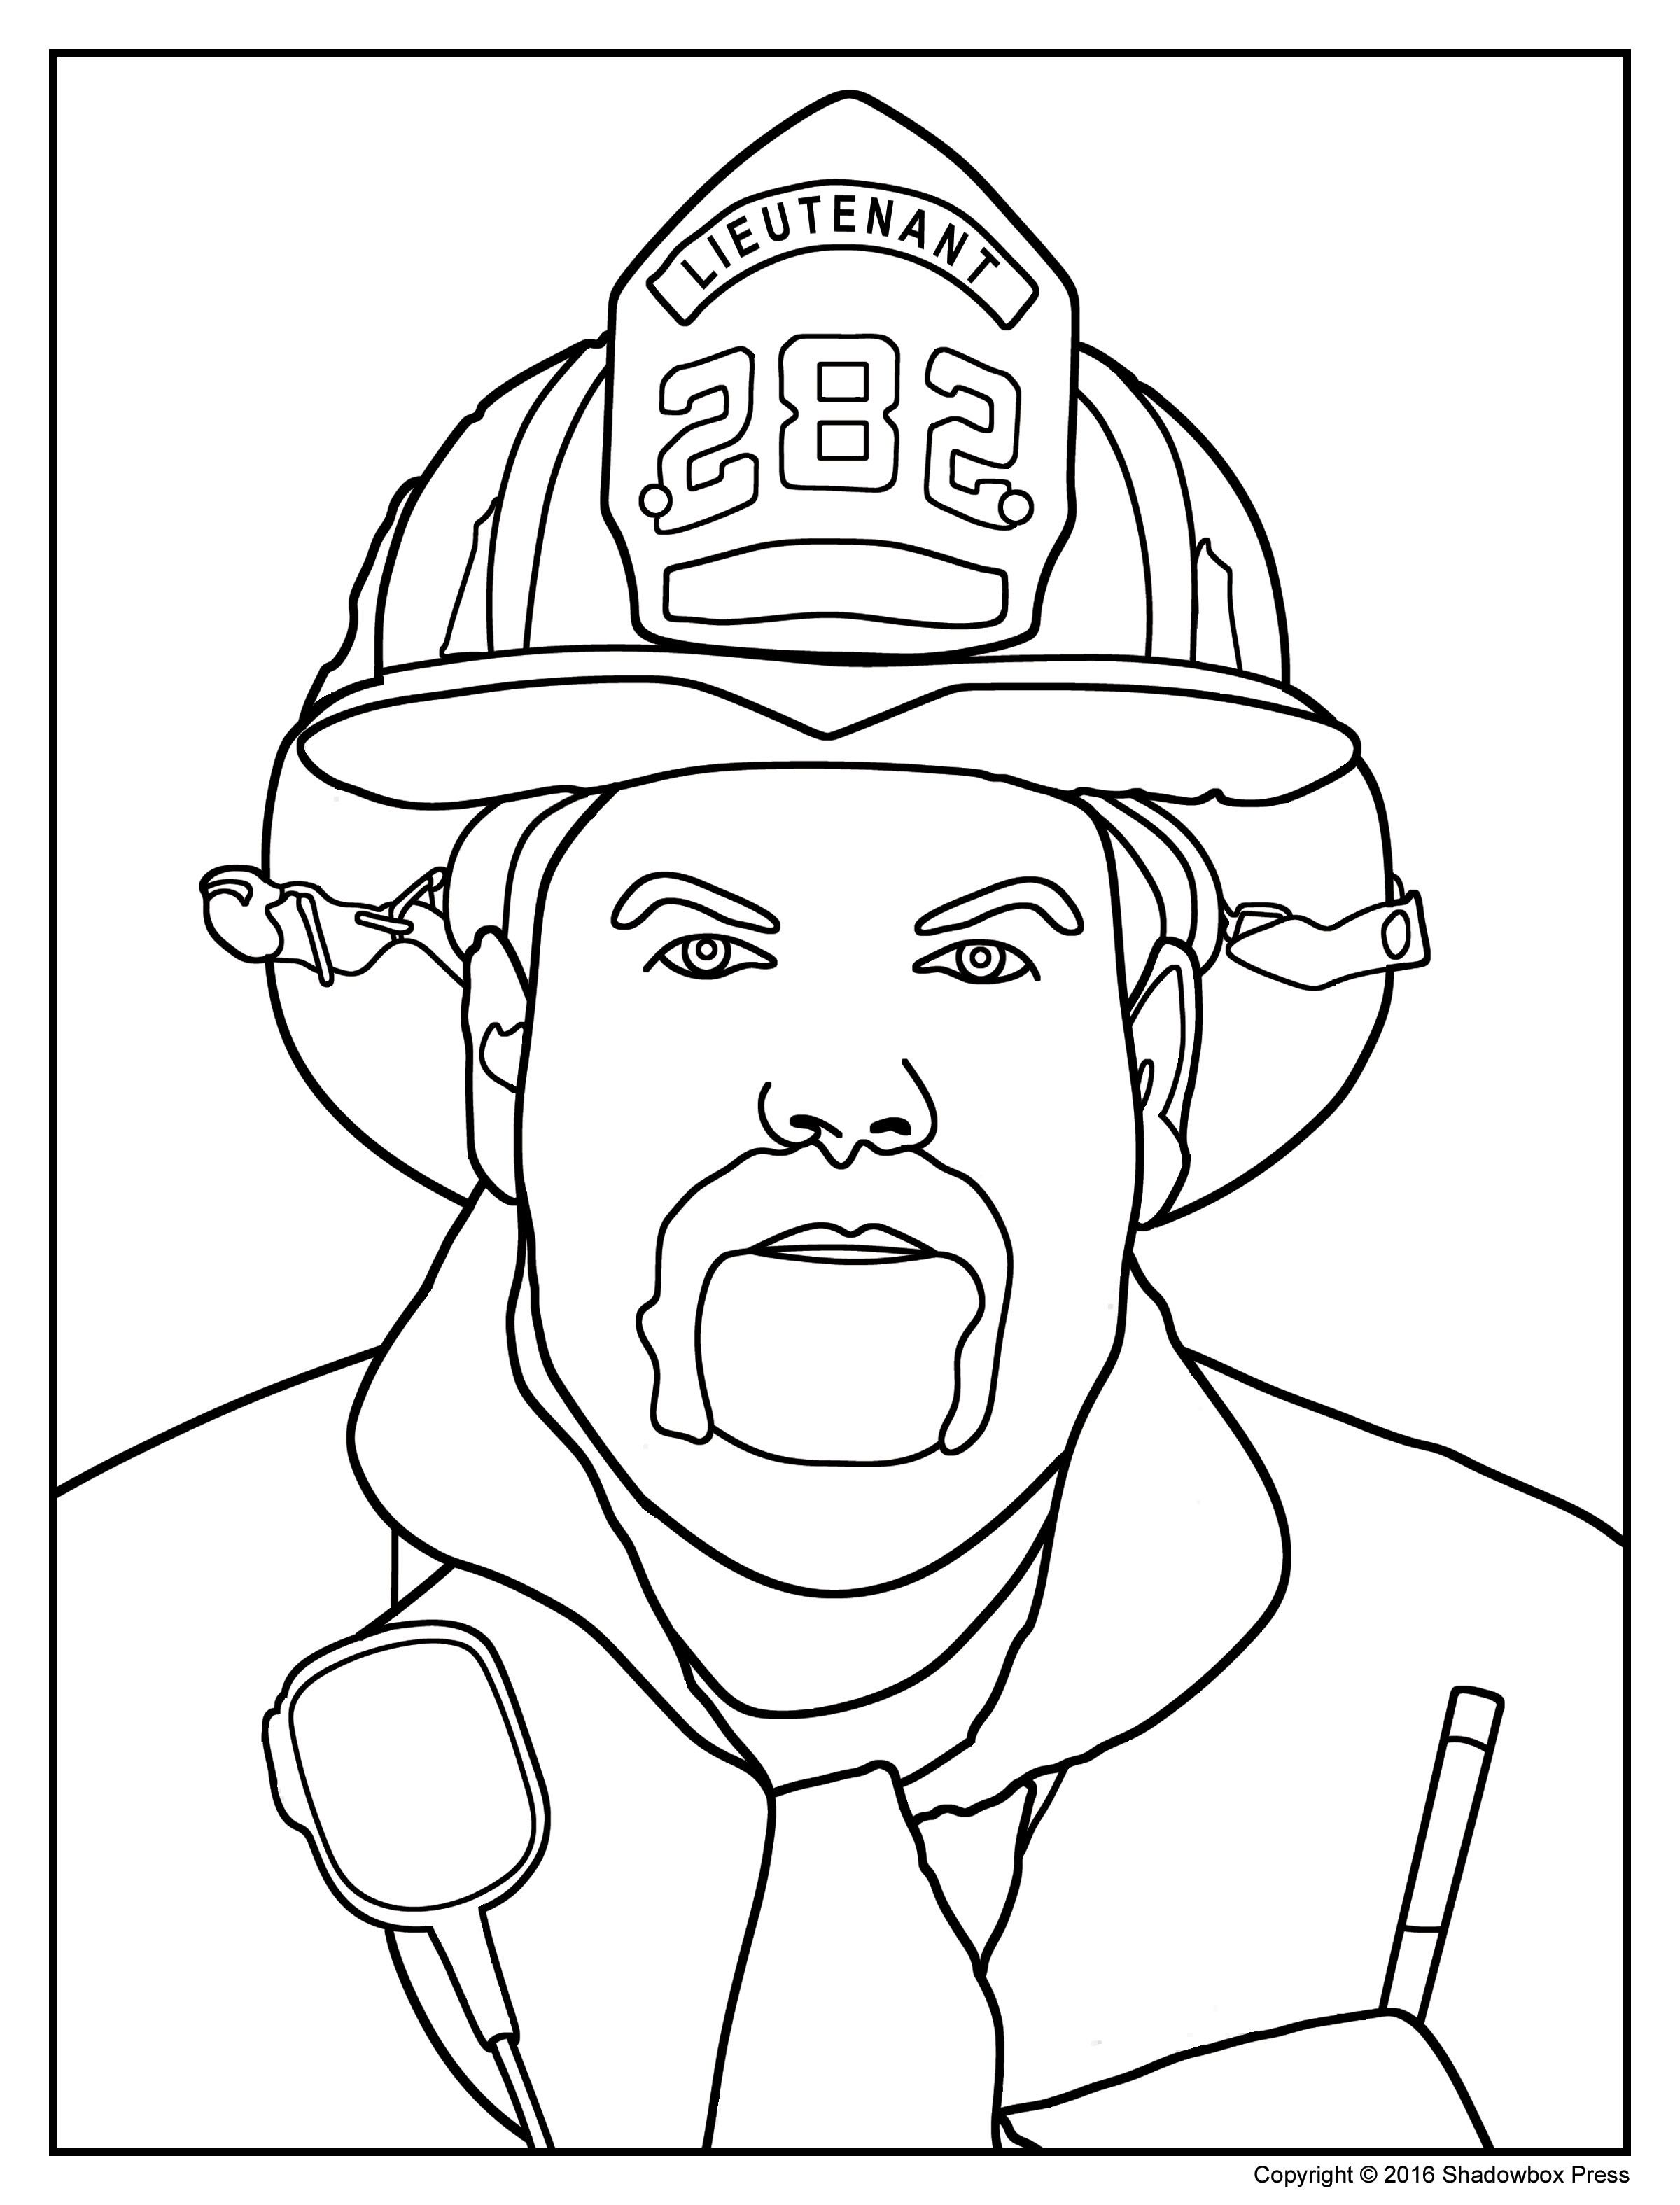 sidney crosby coloring page pictures photos and images sidney